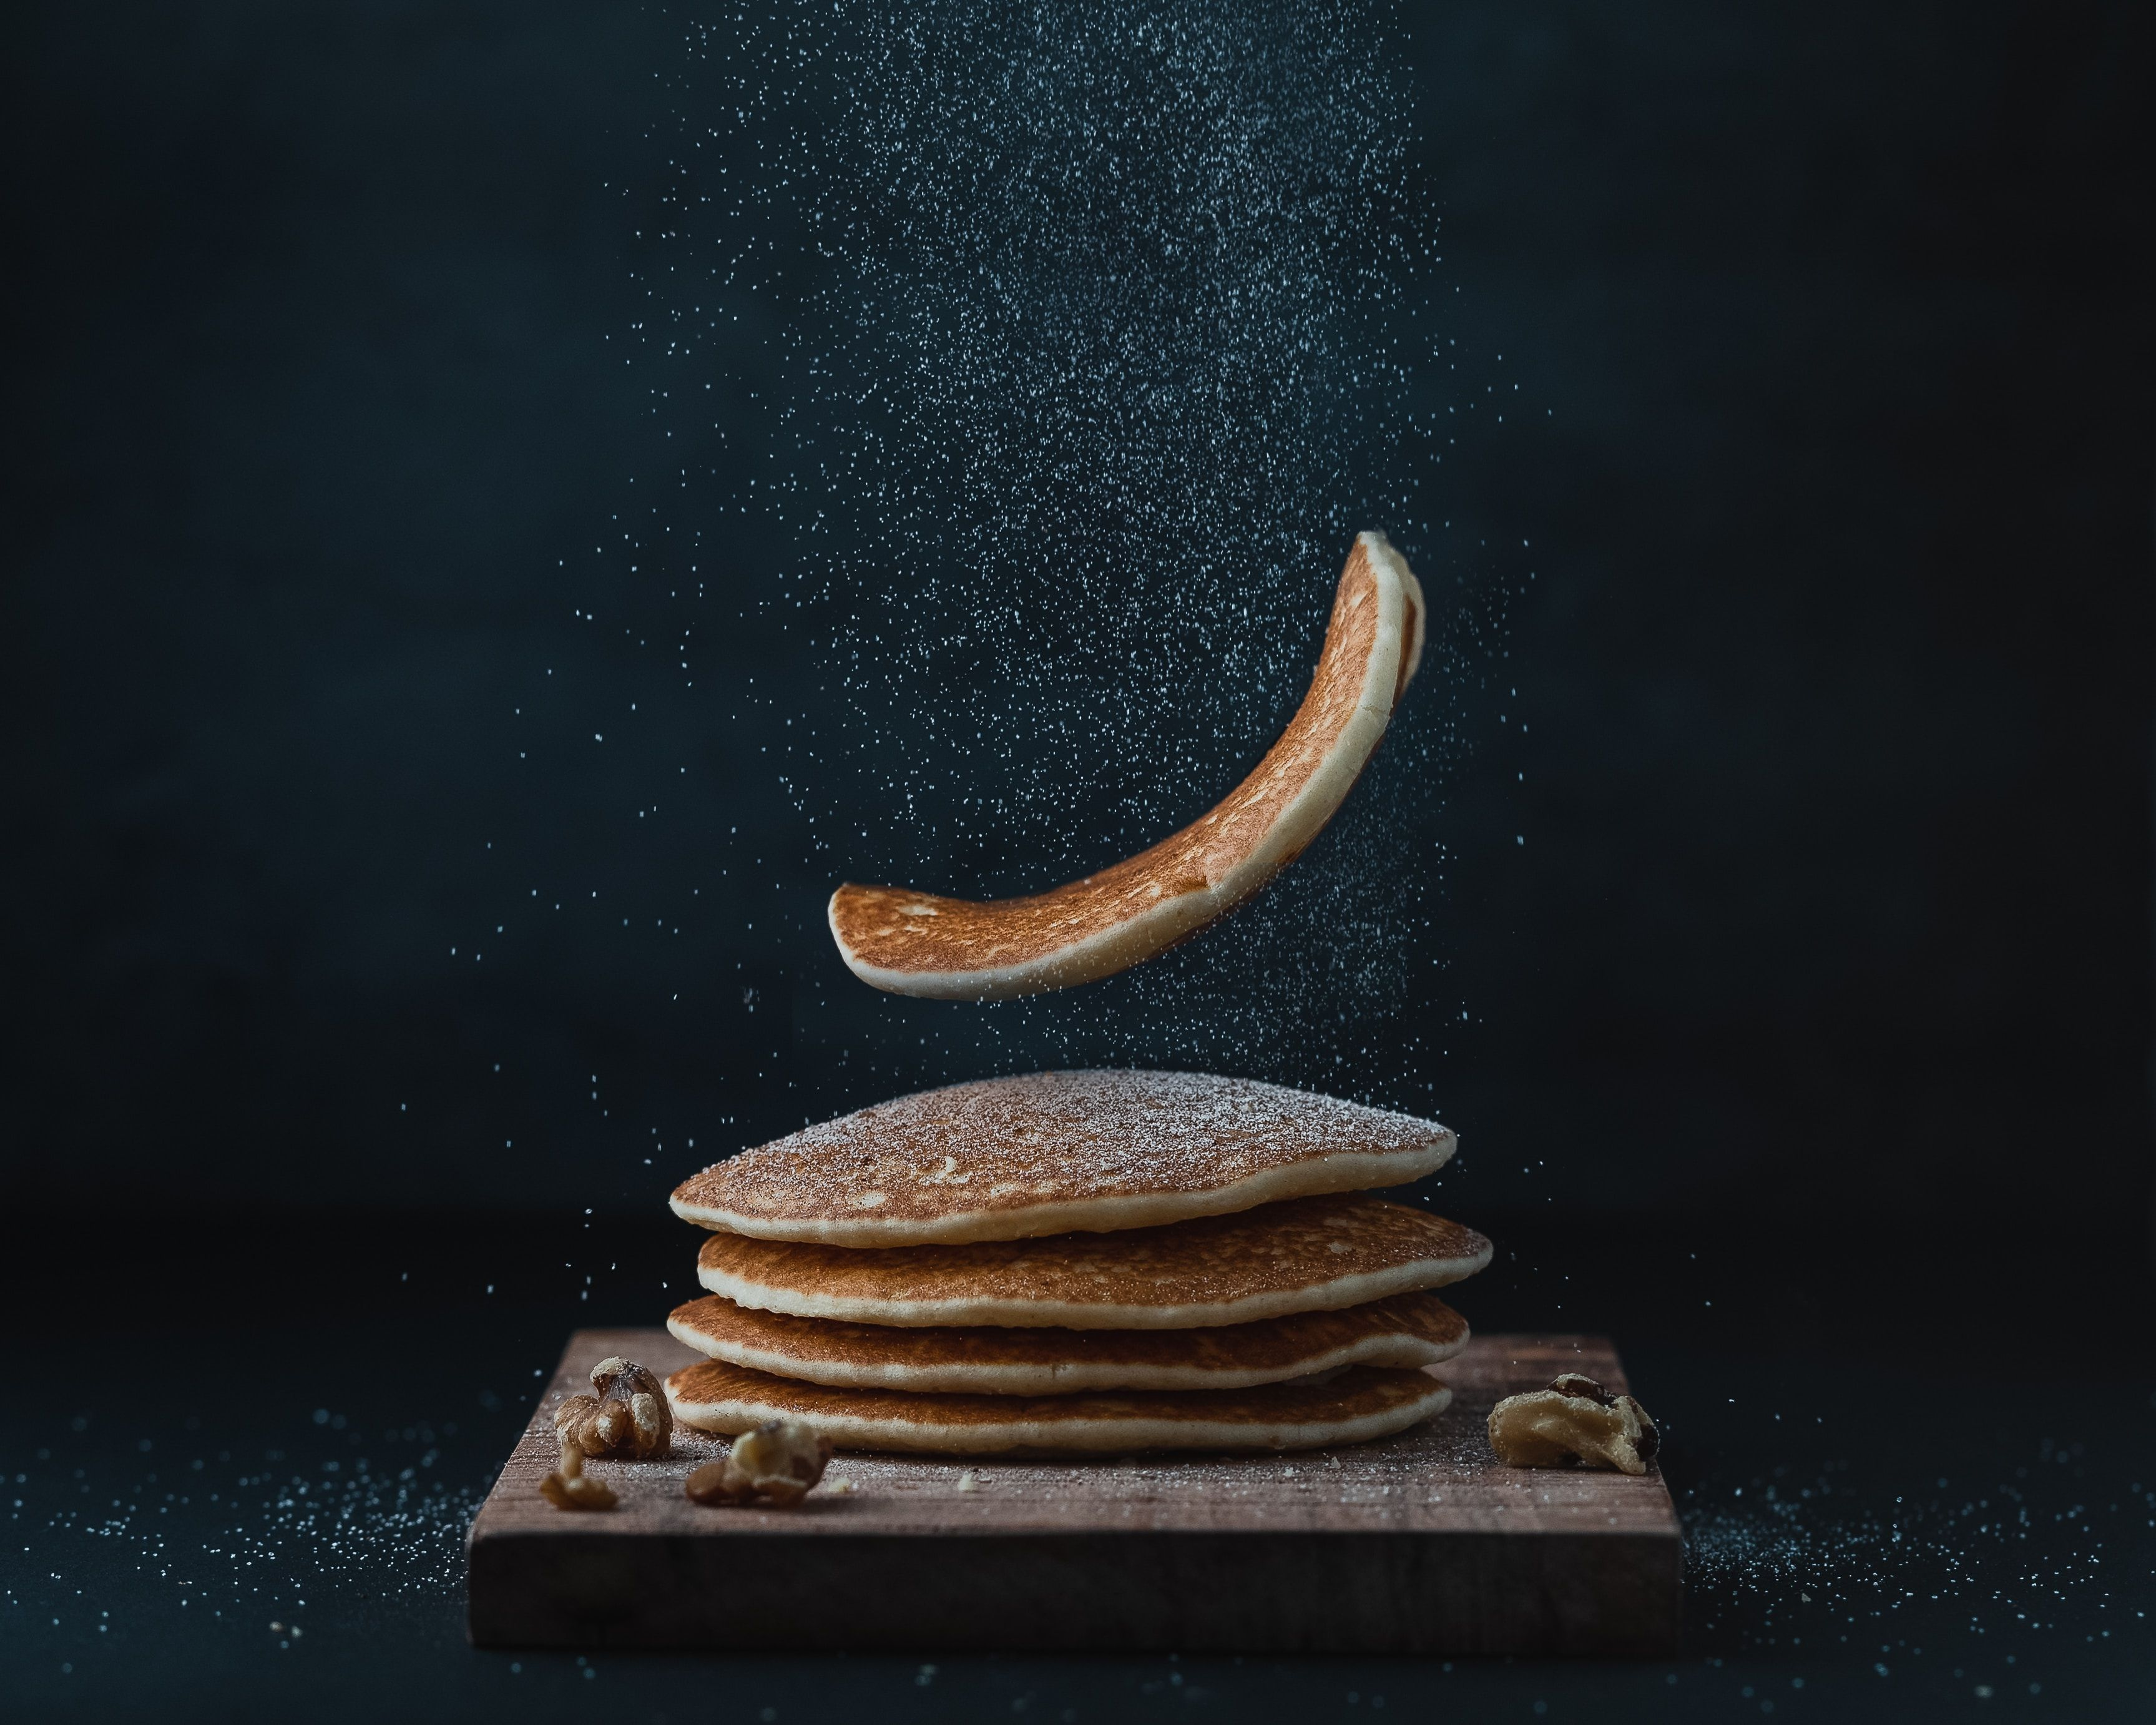 Top 10 Pancake Recipes From Around the World